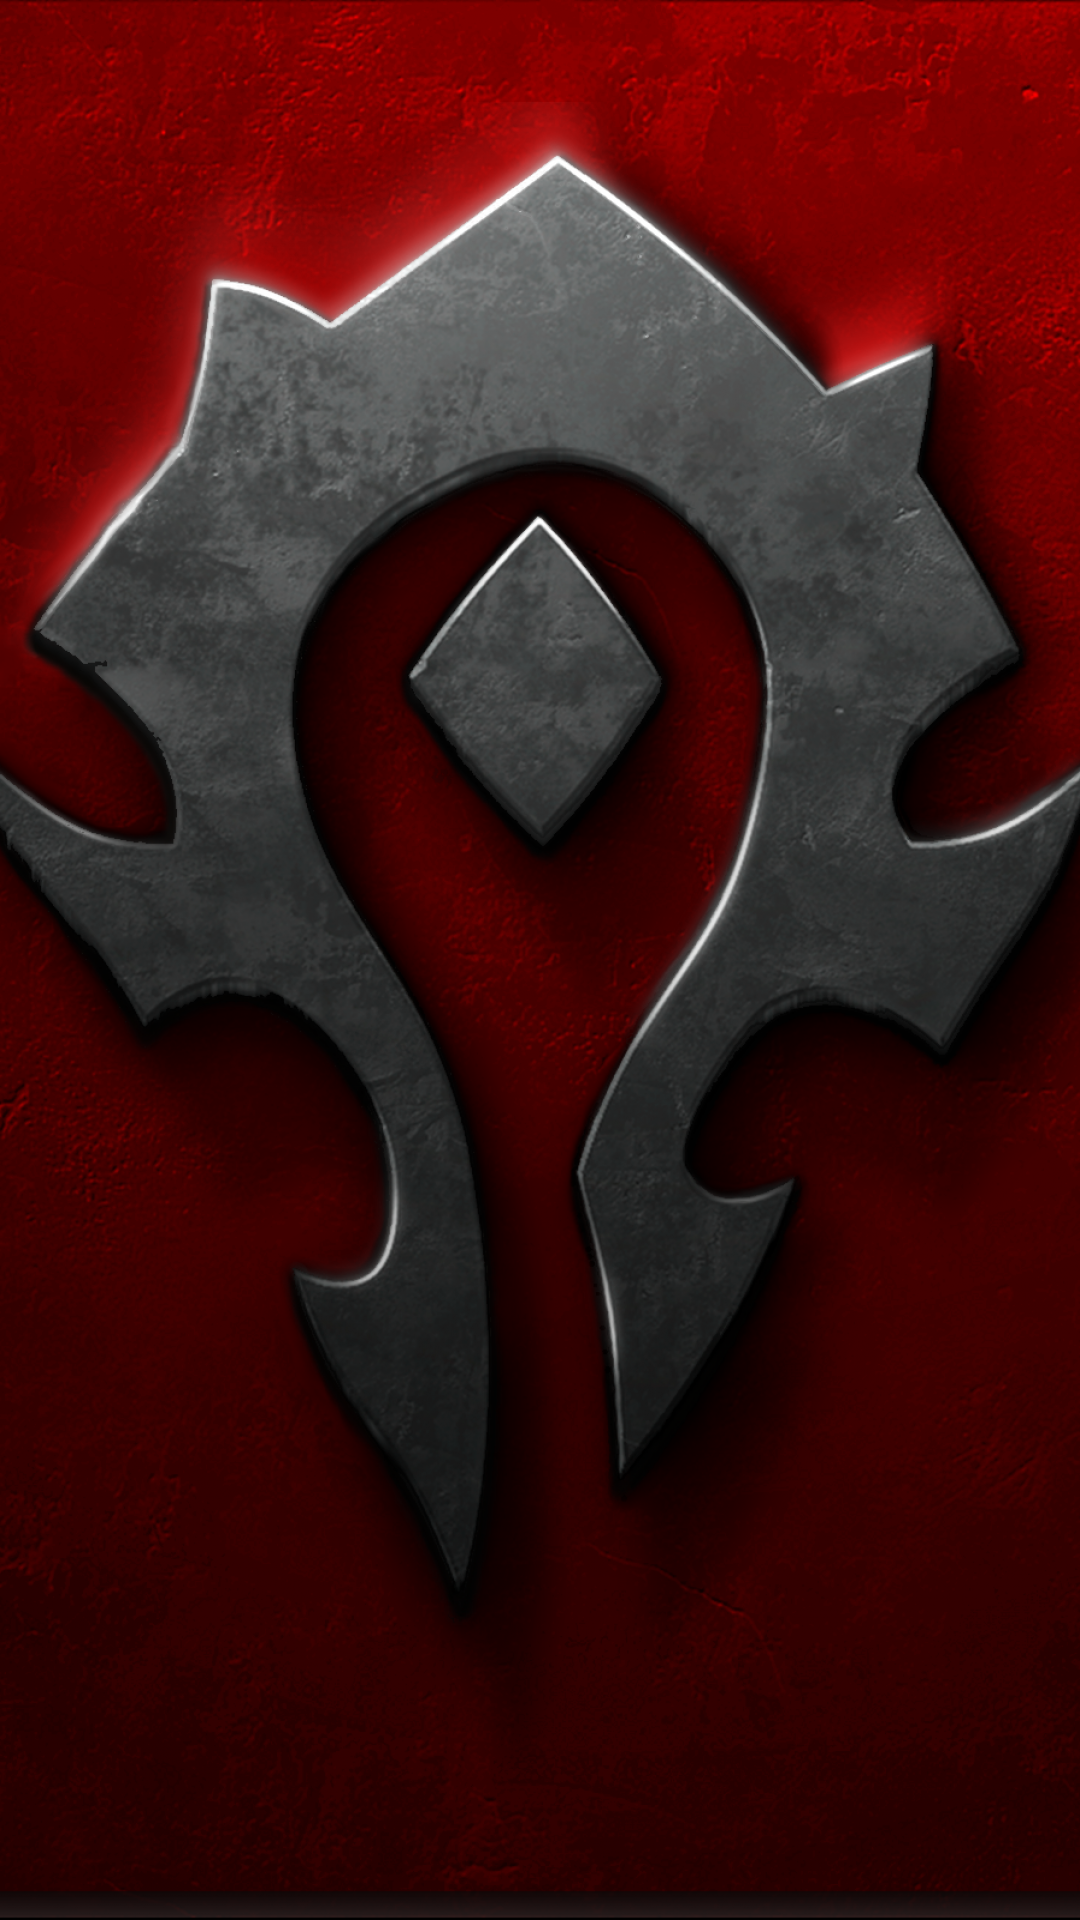 world of warcraft iphone wallpapers 36 wallpapers